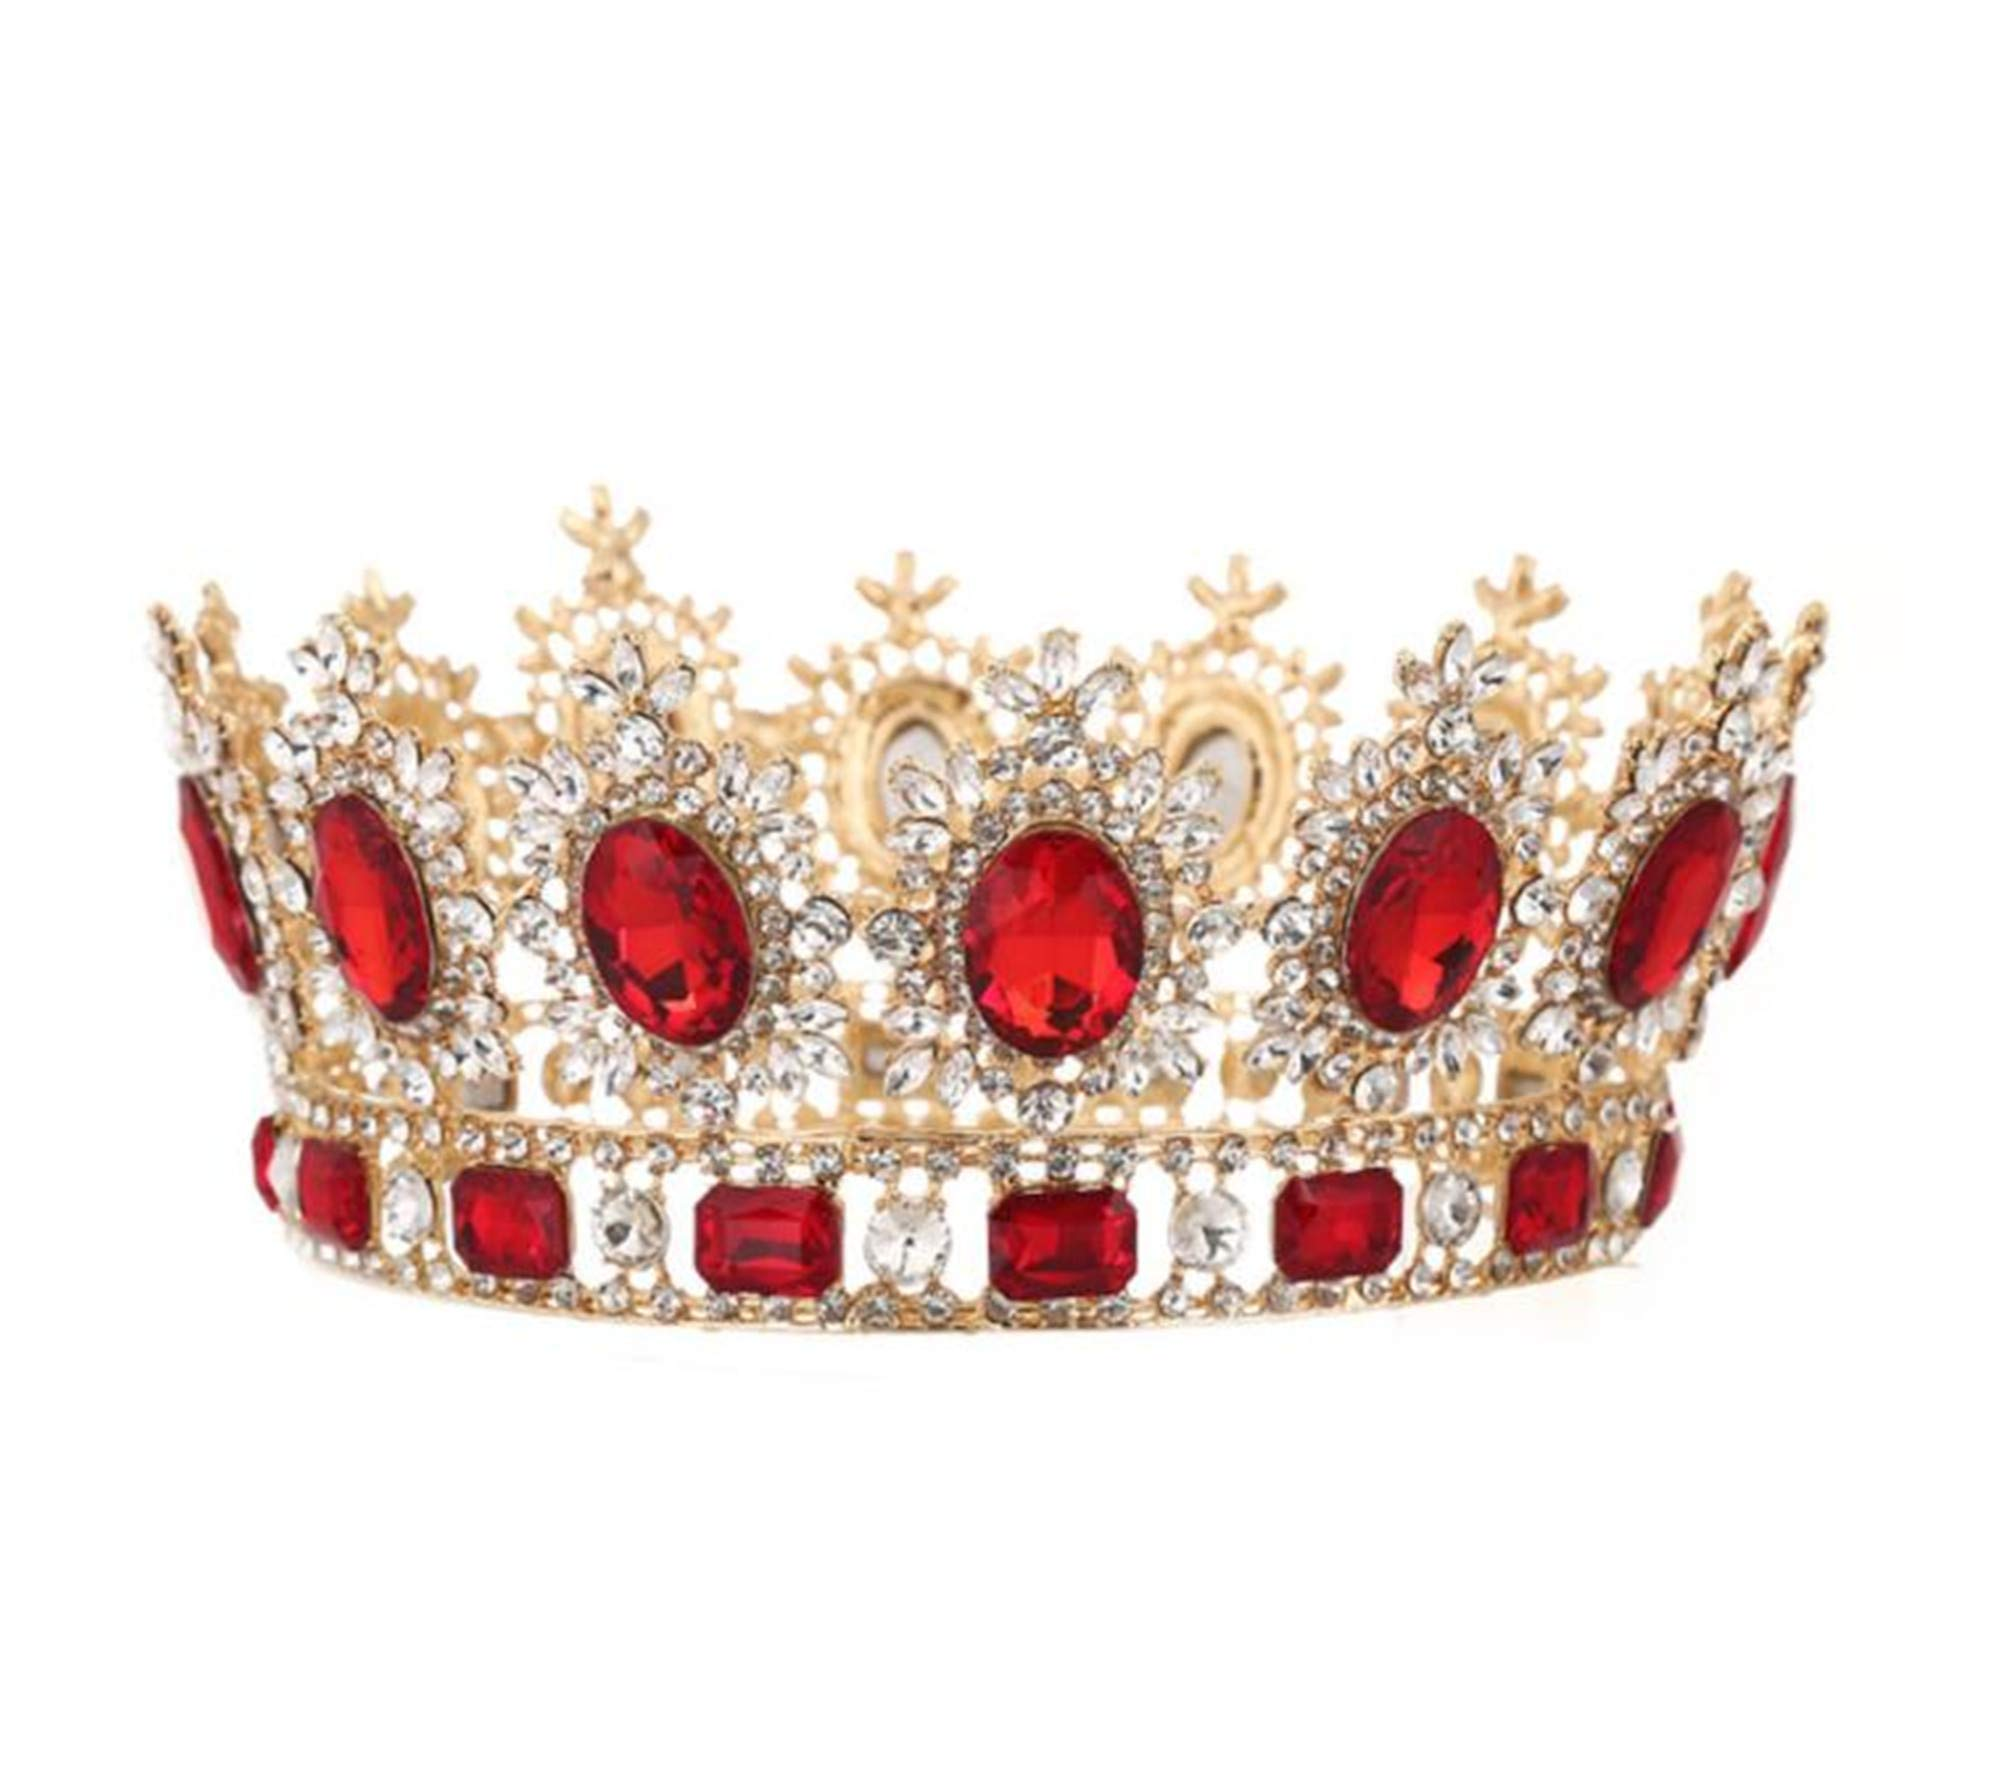 WIIPU Large Gemstone Crystal King Crown Wedding Prom Party Pageant,6.7'' Diameter(A1365) (Red)